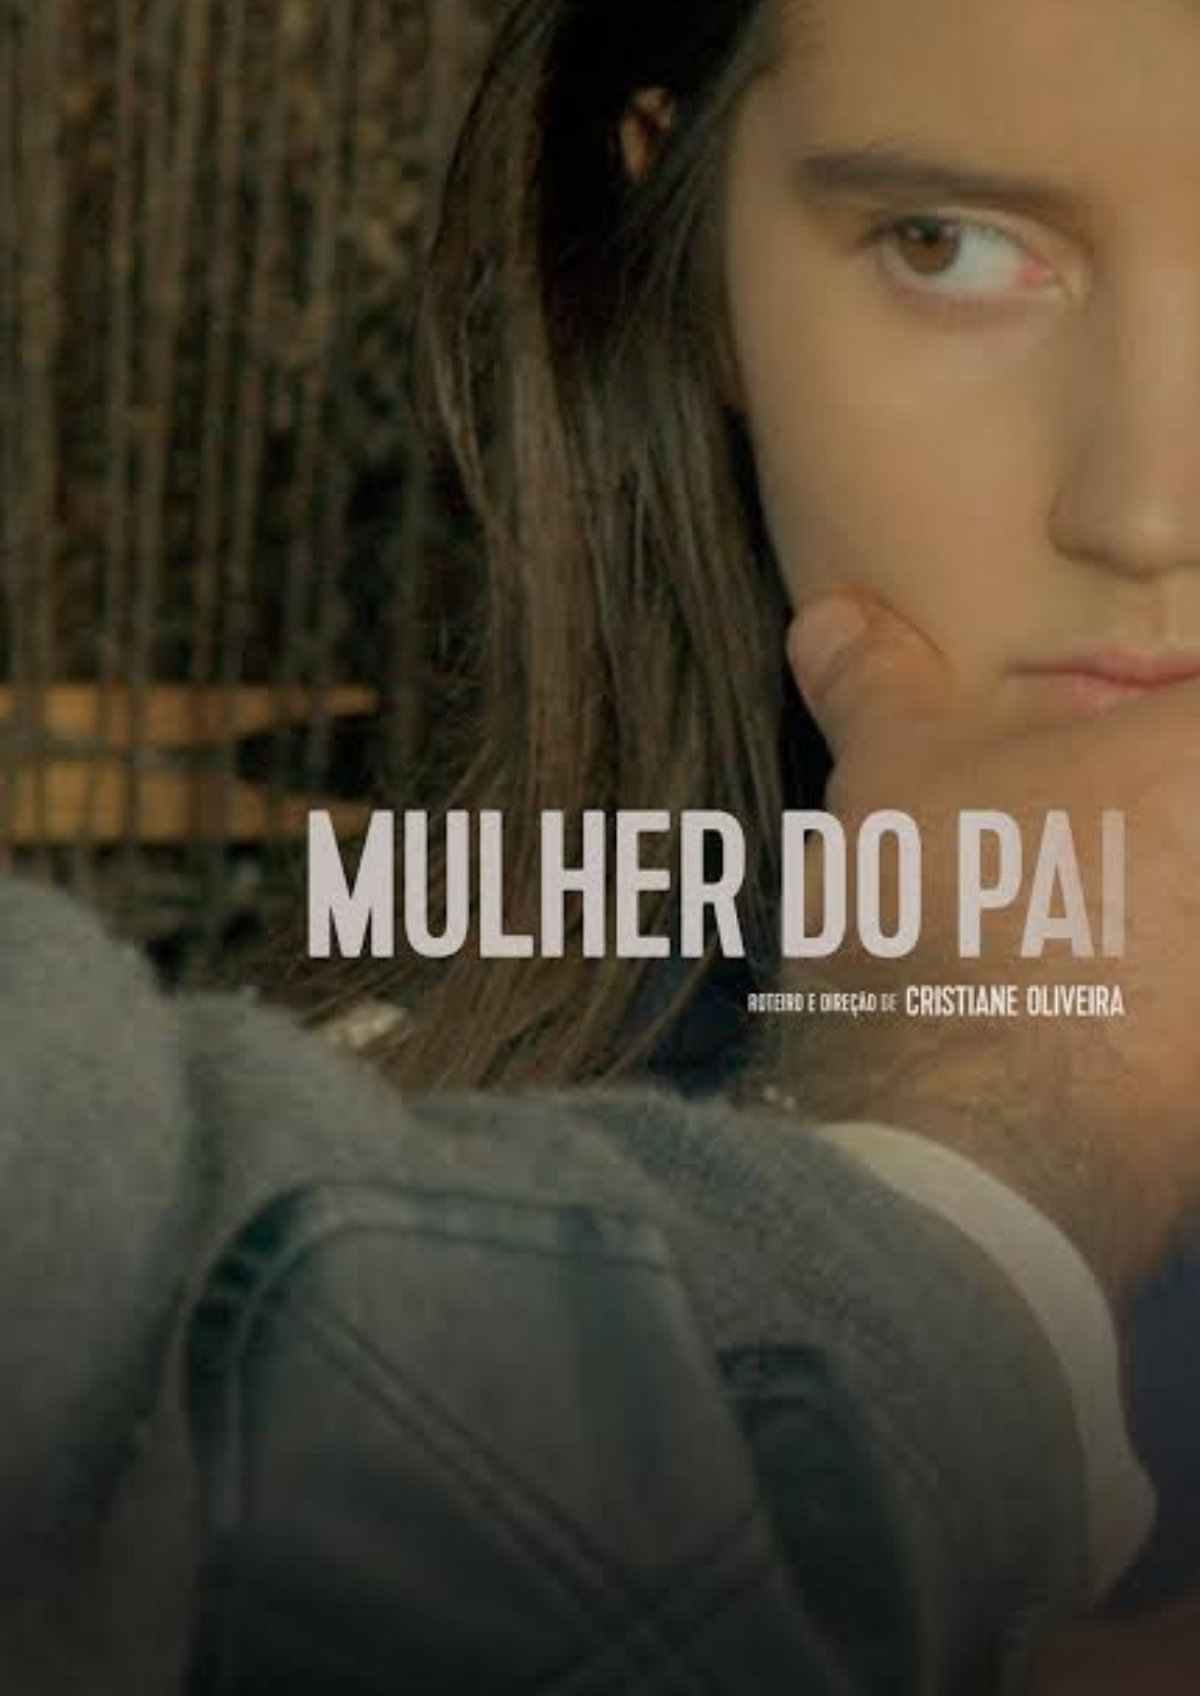 'Nalu On The Border (Mulher Do Pai)' movie poster